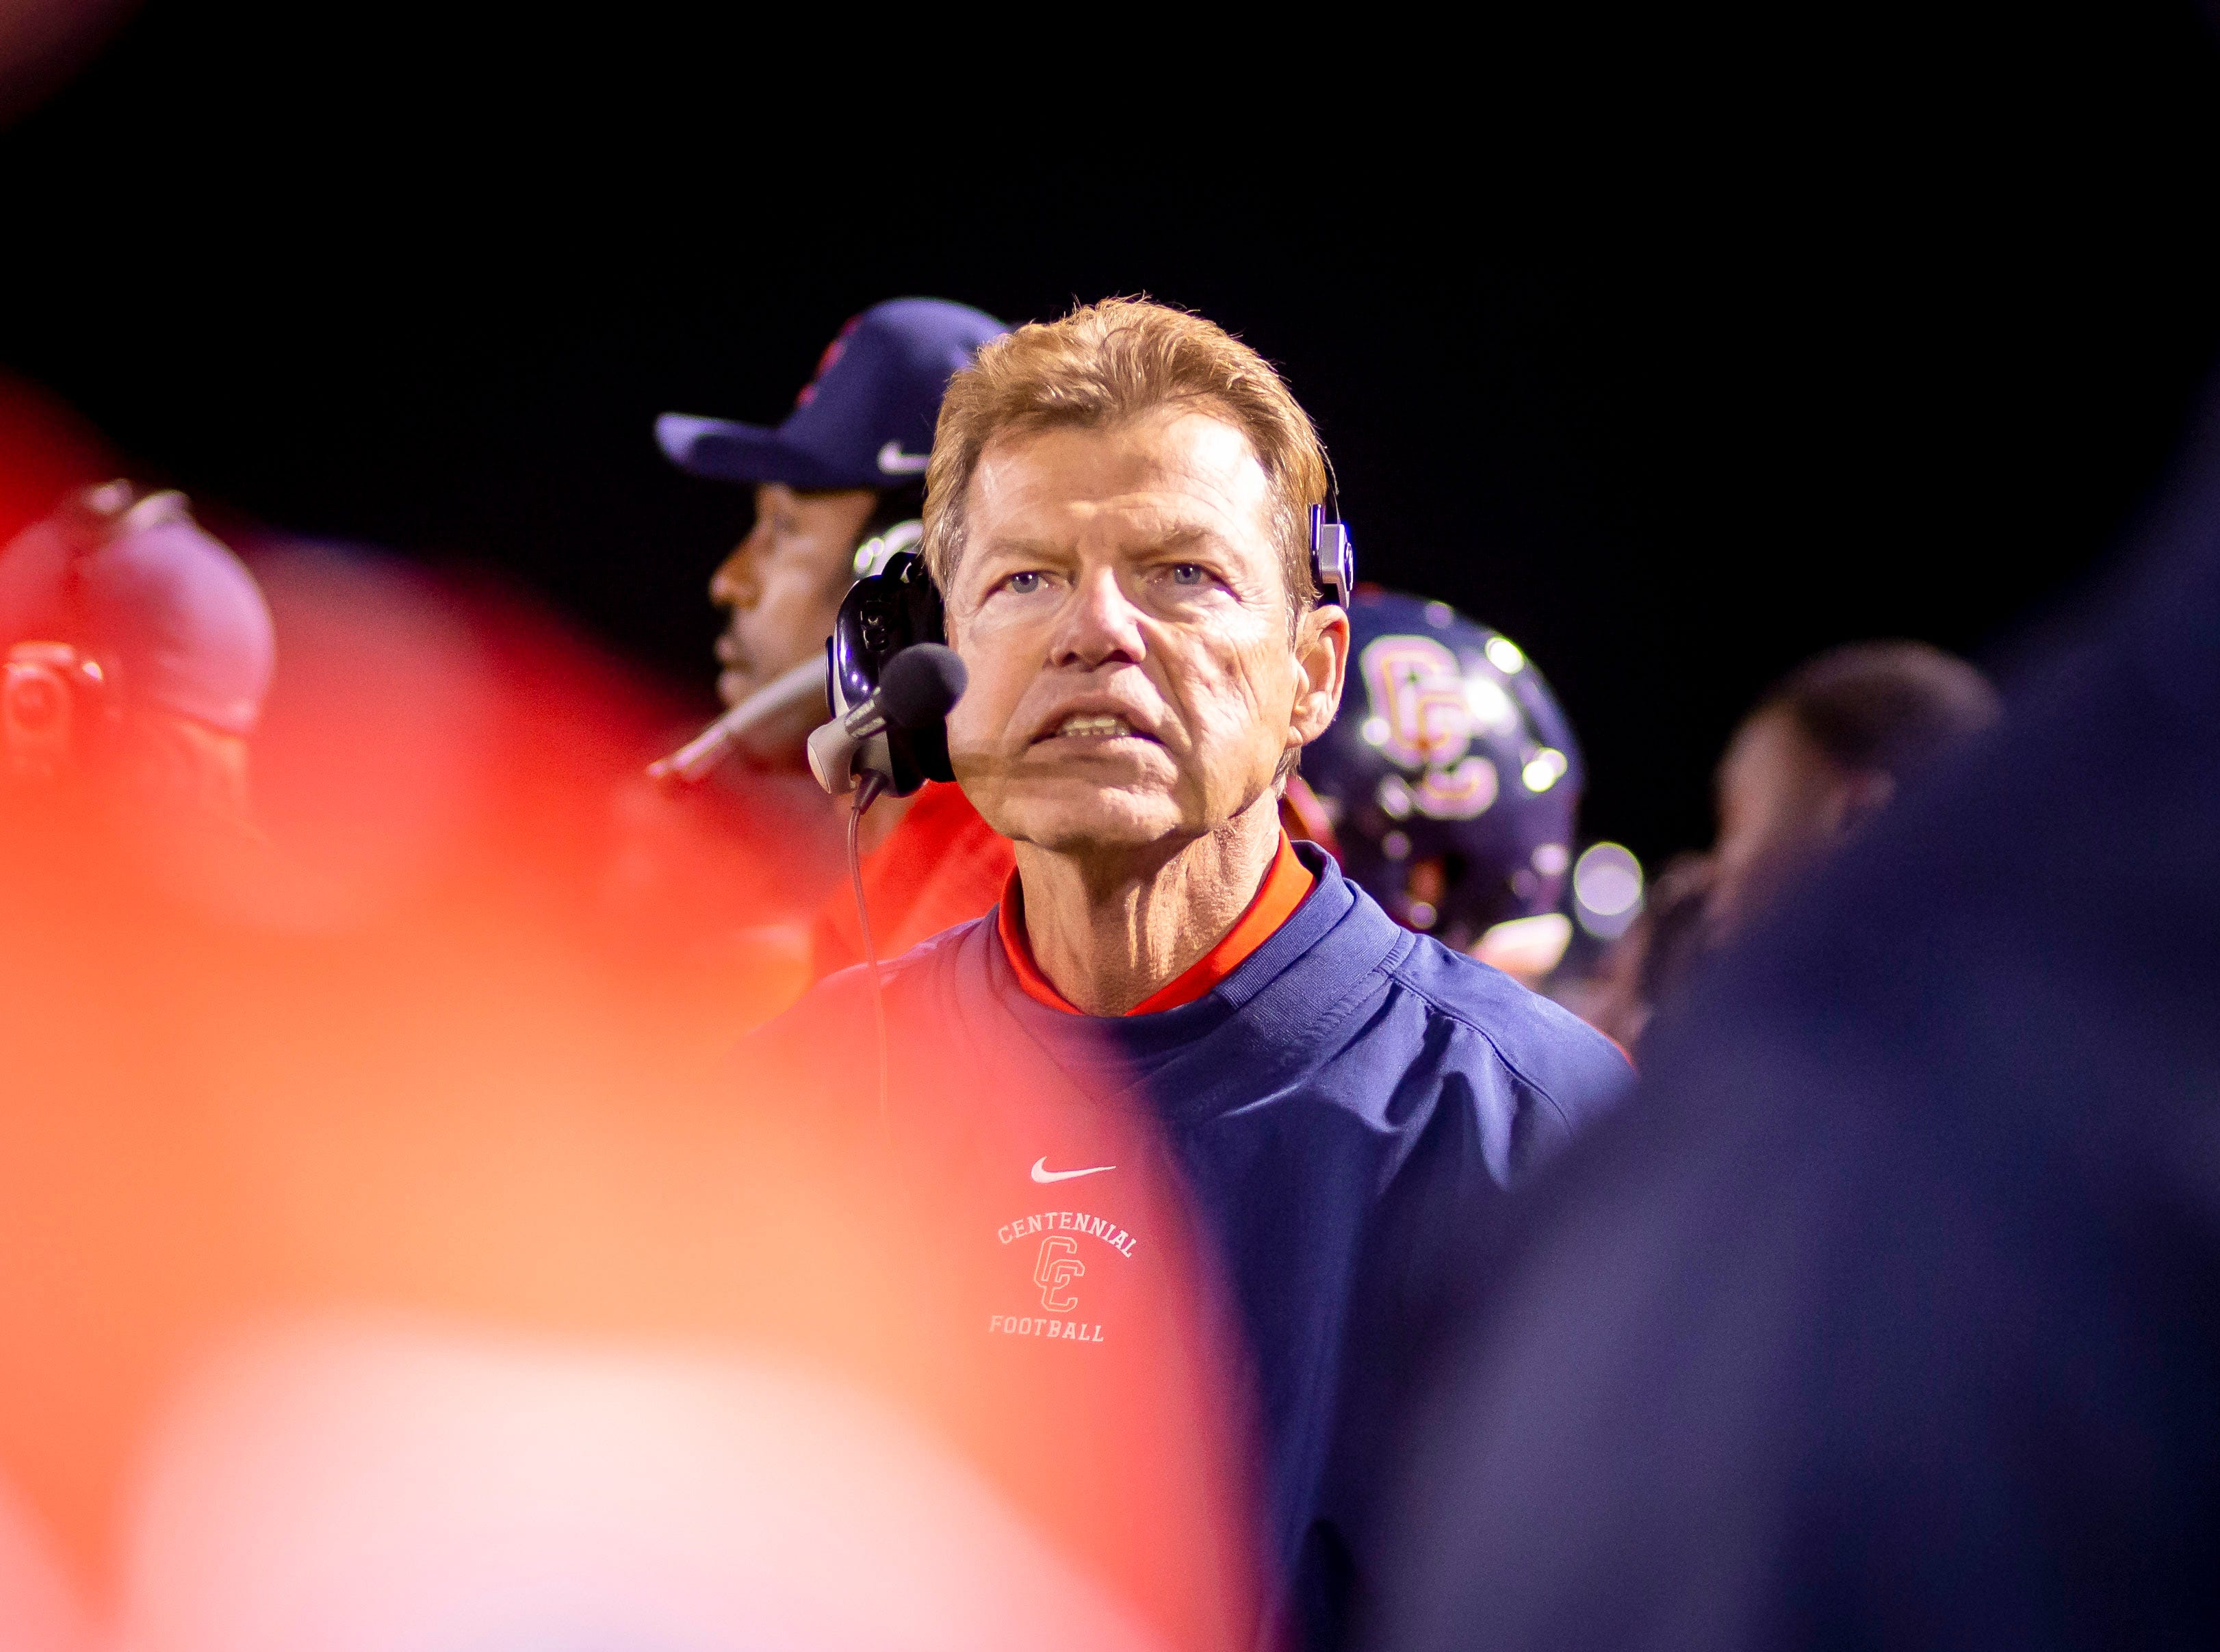 Head coach Richard Taylor of the Centennial Coyotes during the 5A semi-finals against the Higley Knights at Willow Canyon High School on Friday, November 16, 2018 in Surprise, Arizona. #azhsfb